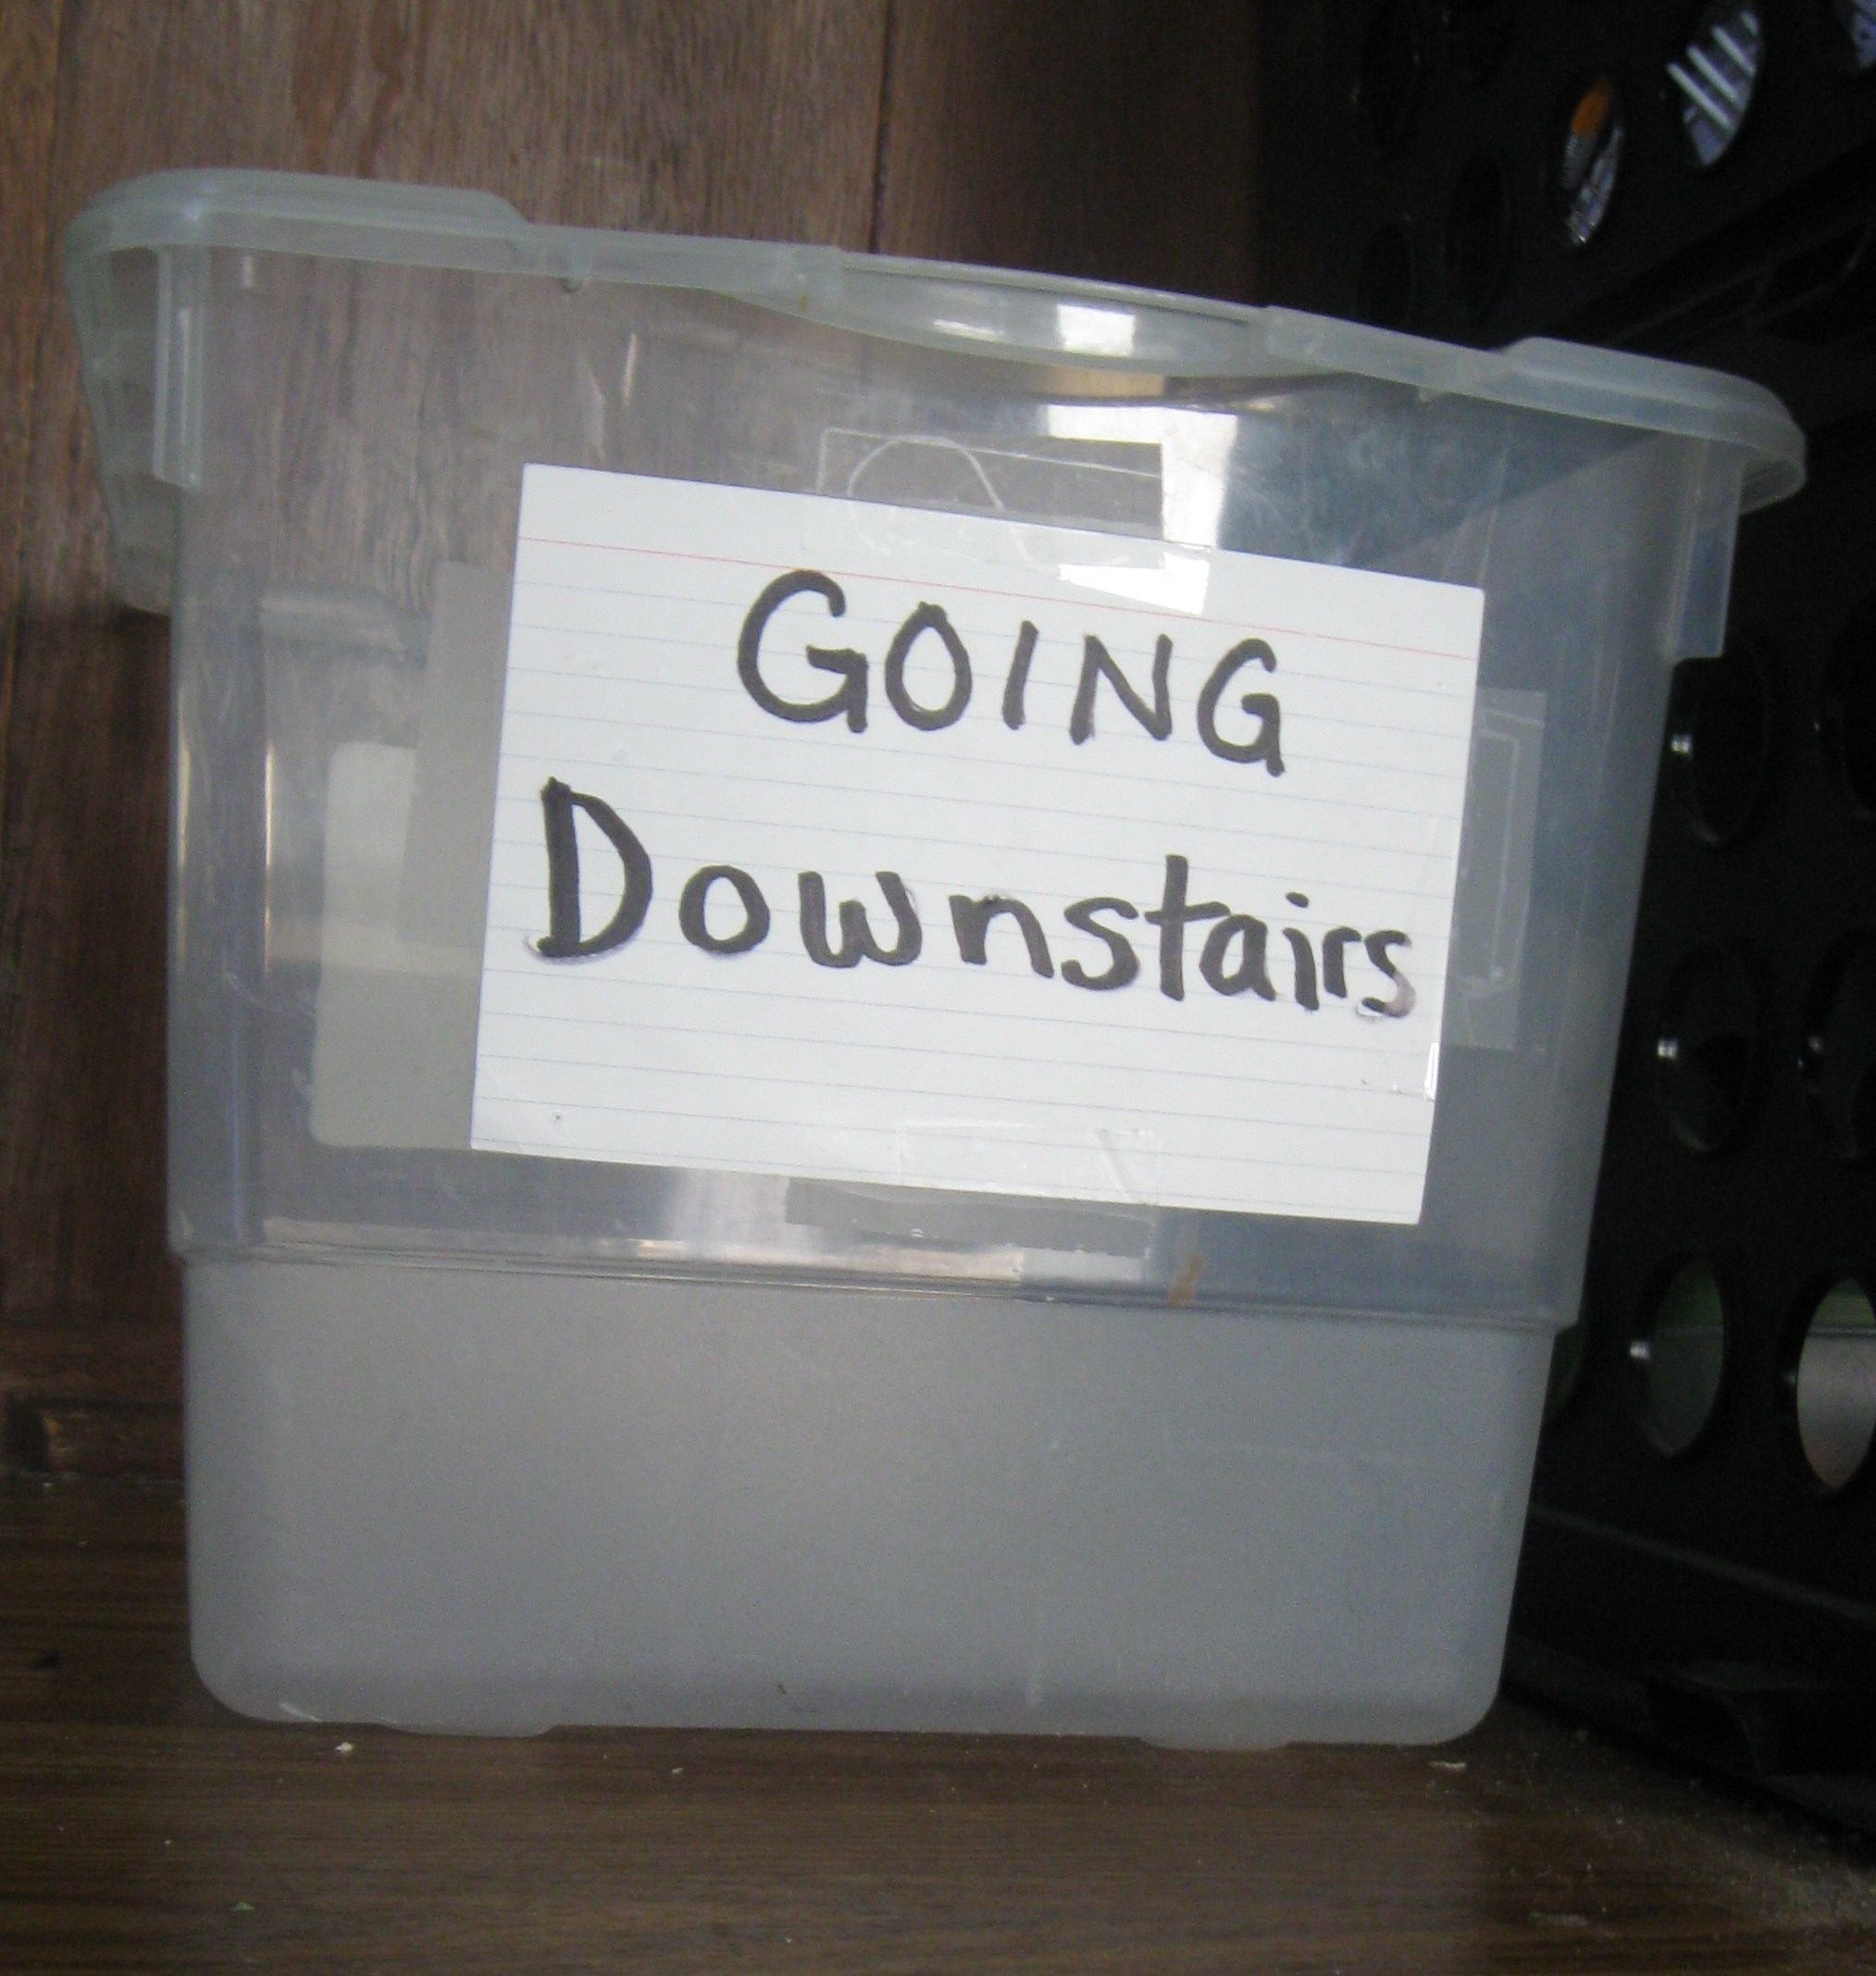 The Downstairs Box